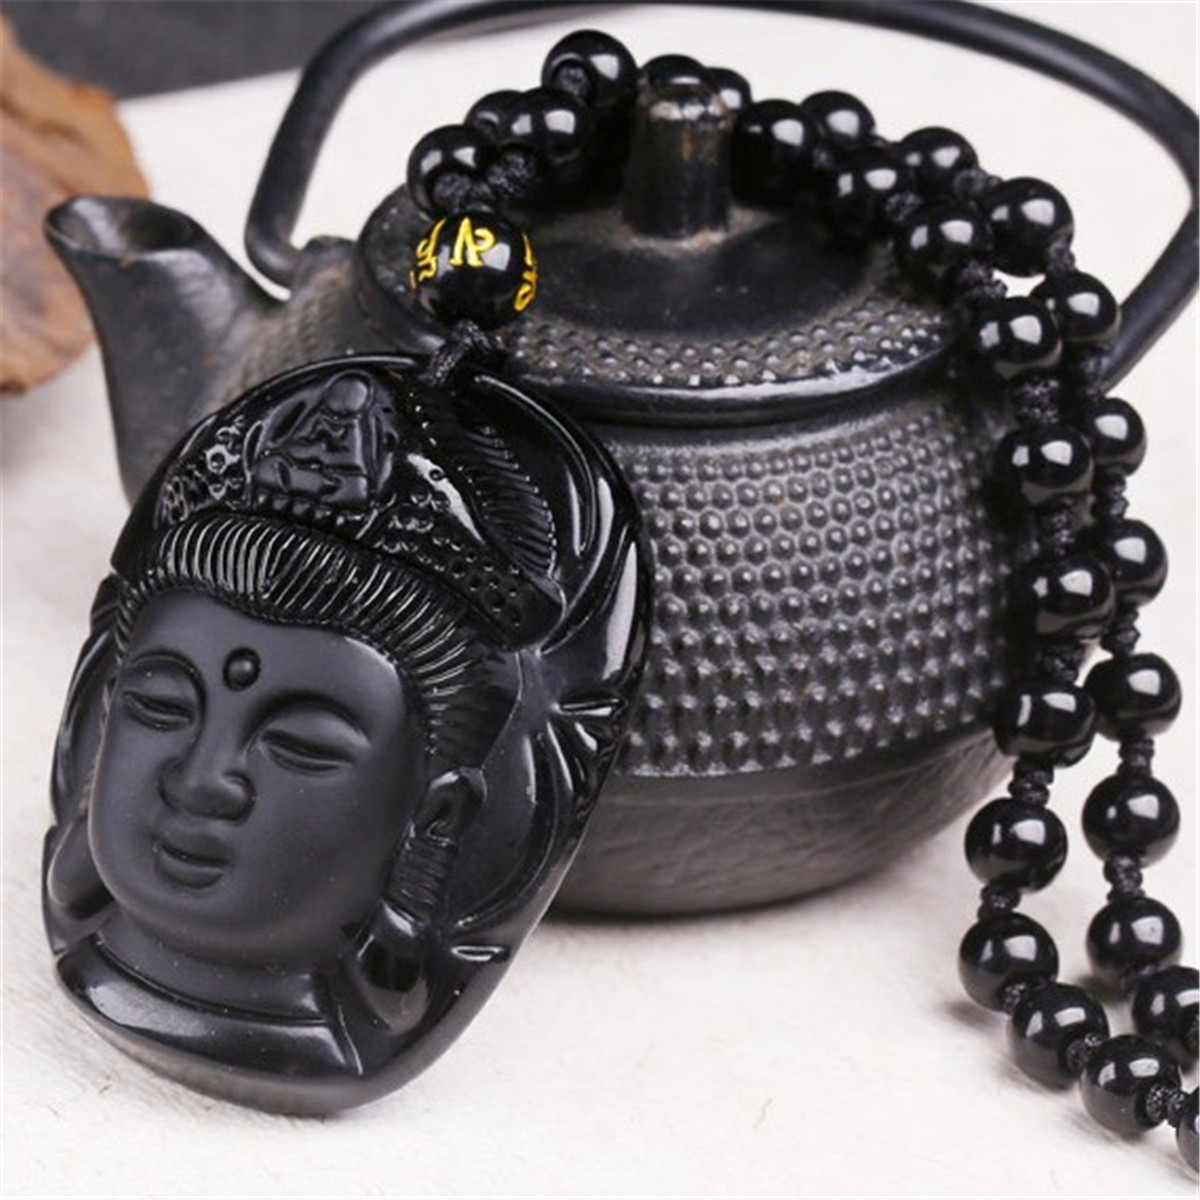 Natural Black Obsidian Pendant Hand Carved Chinese Buddha Lucky Amulet Guanyin Head Pendant Fashion Jewelry